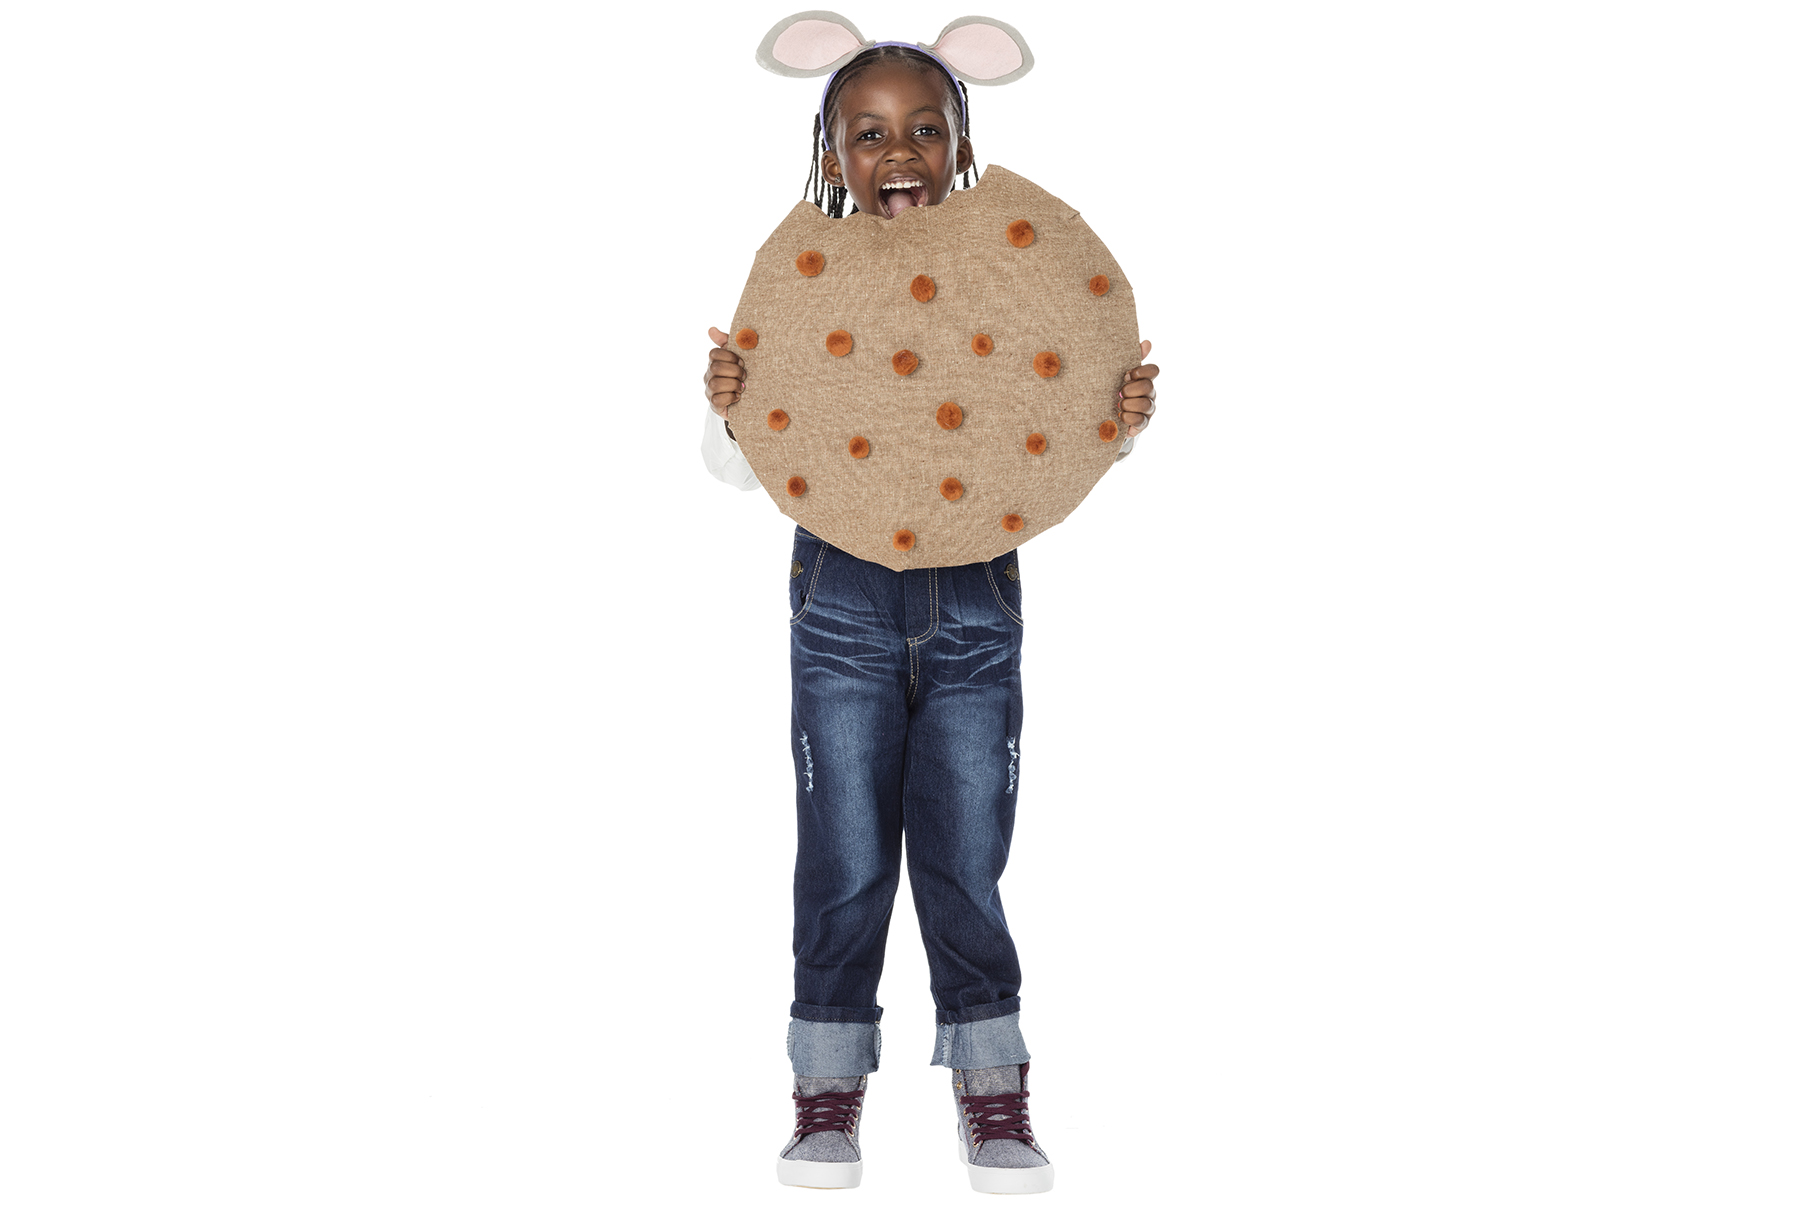 DIY Halloween costumes - If You Give a Mouse a Cookie Costume